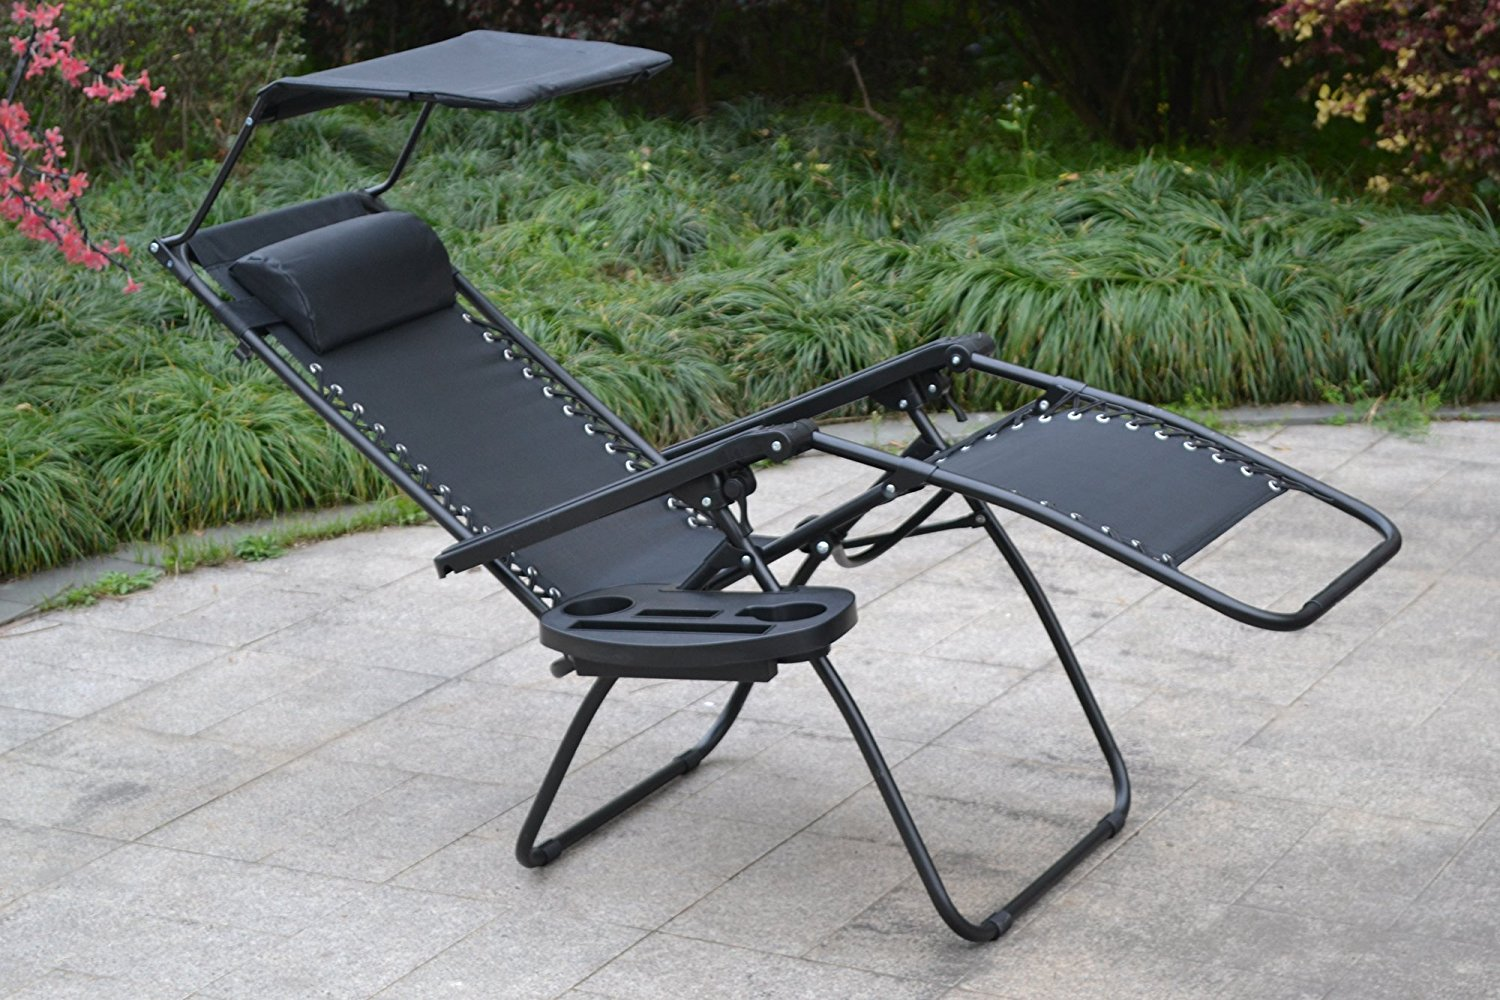 Zero gravity Chair with Canopy sunshade, Black, Set of 2